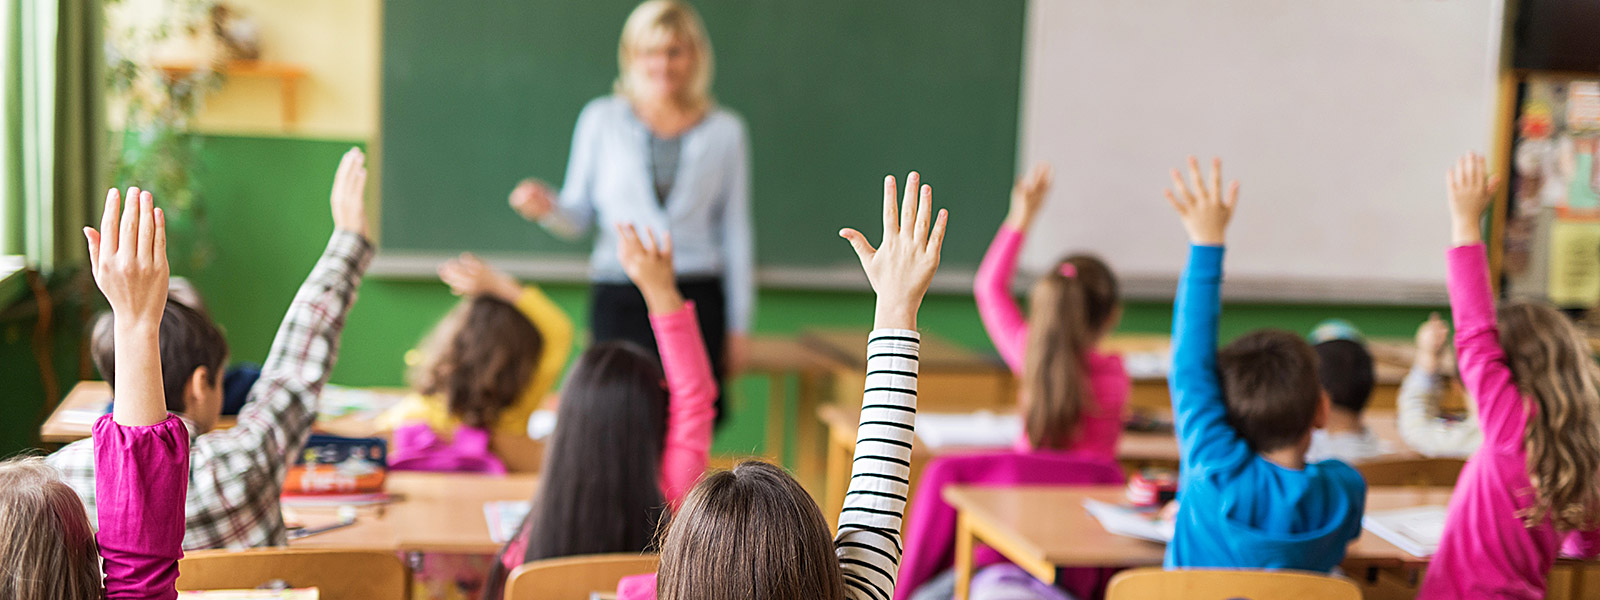 students in classroom raising their hands to answer question